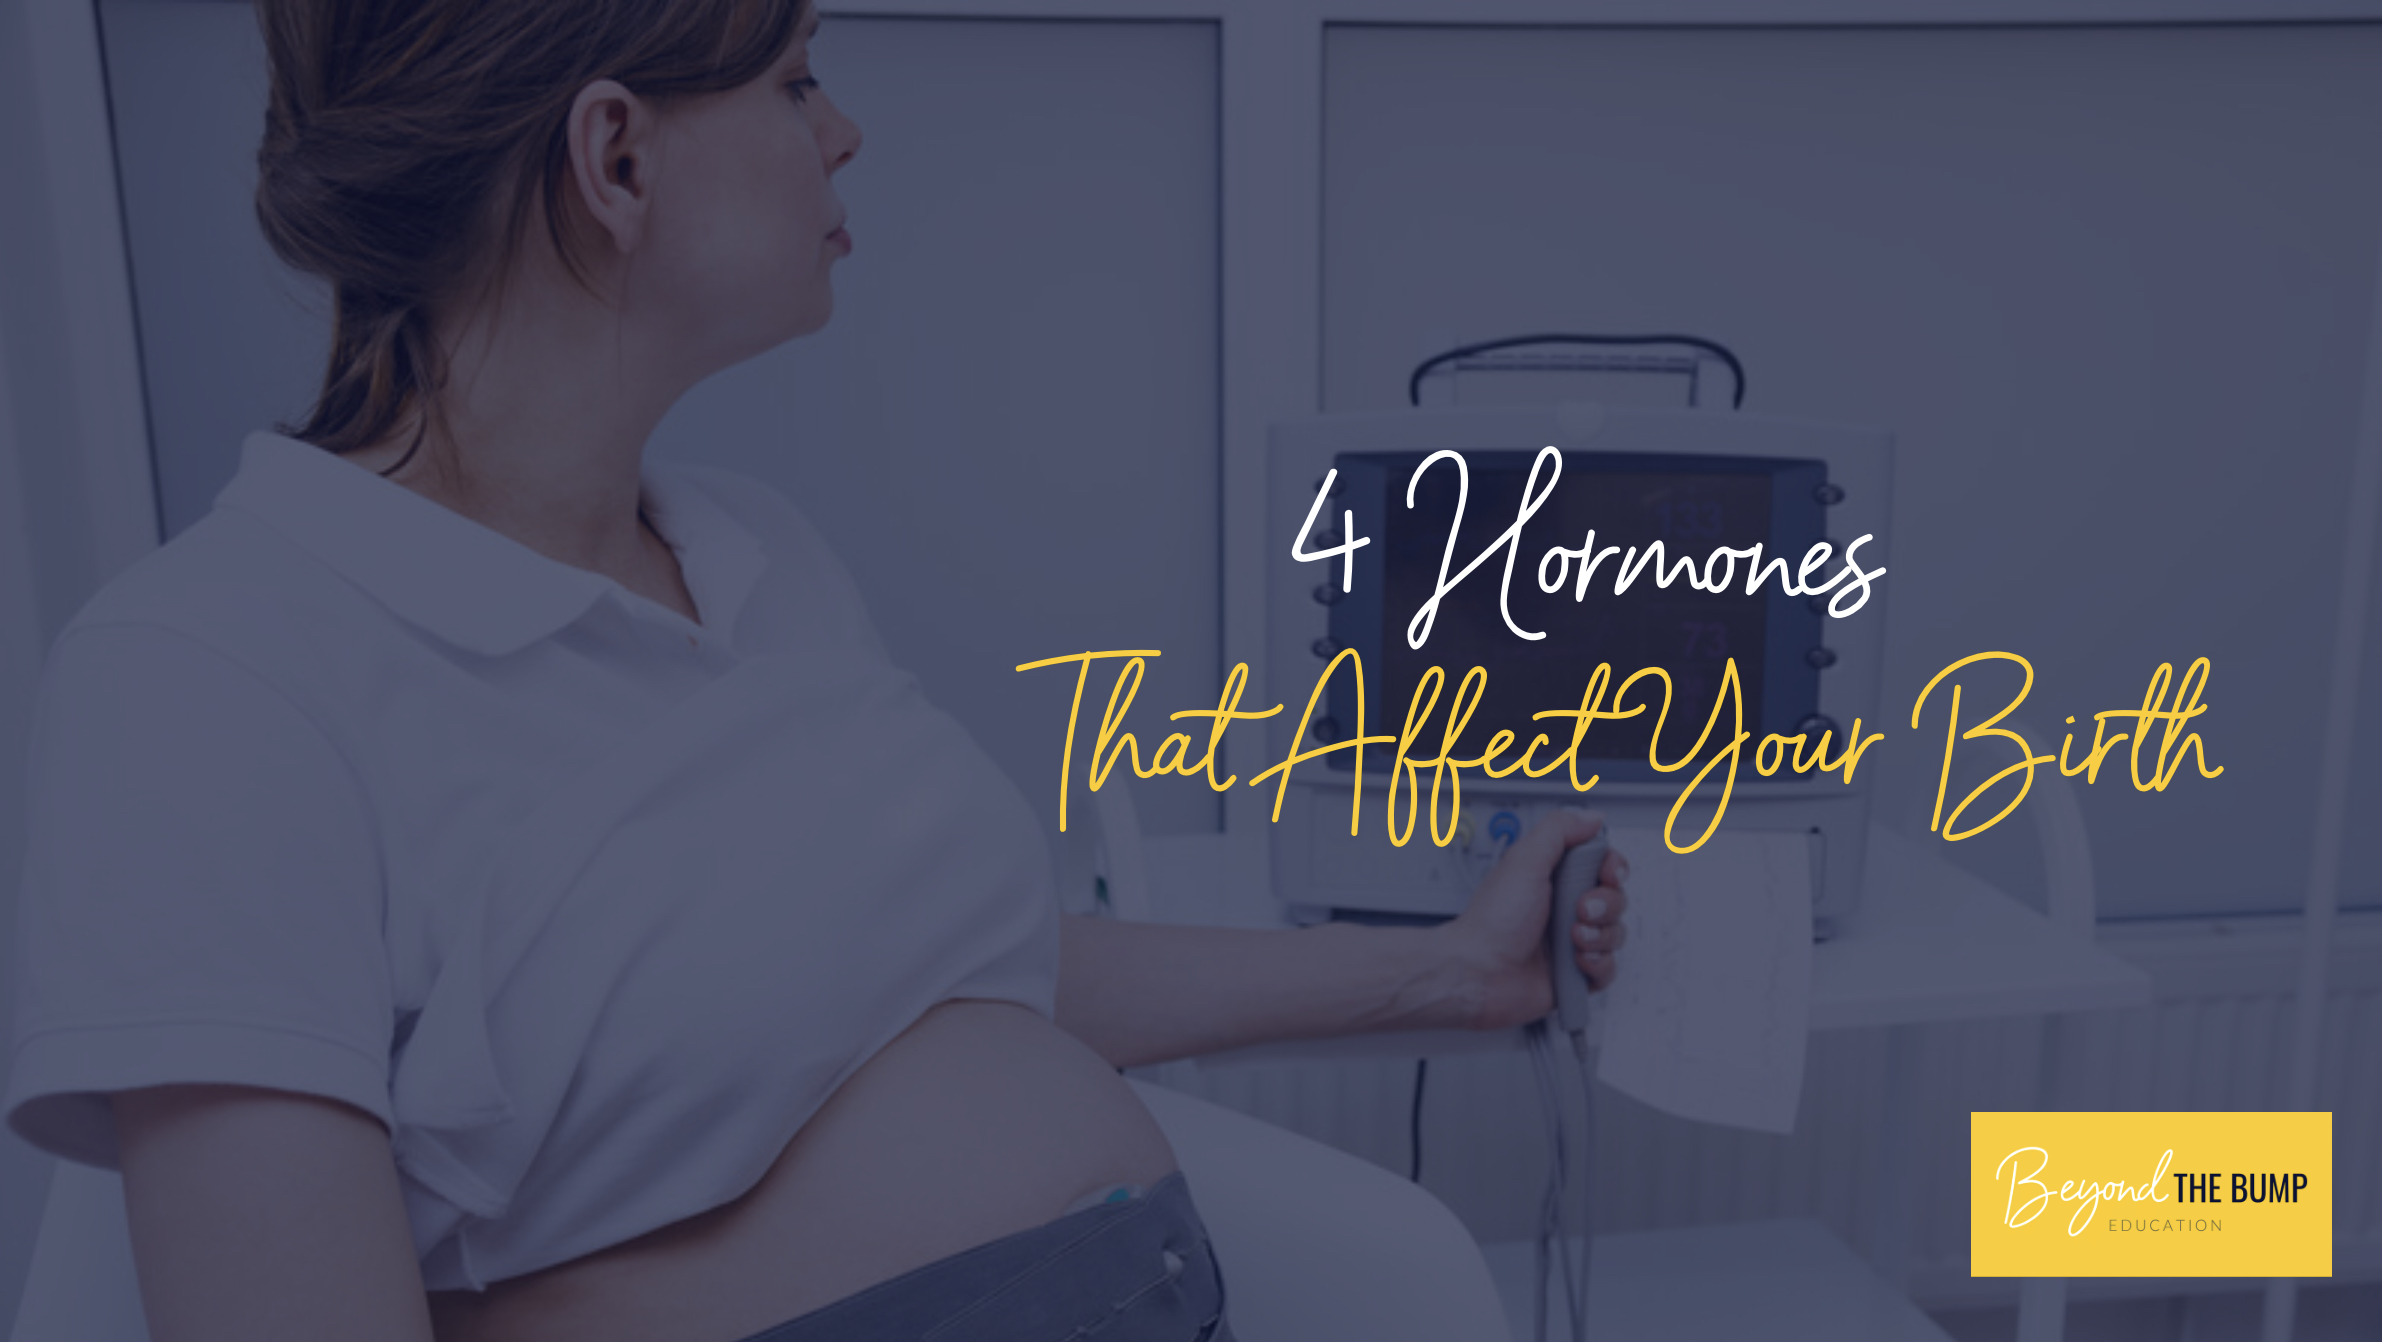 the role of pregnancy Hormones in Childbirth